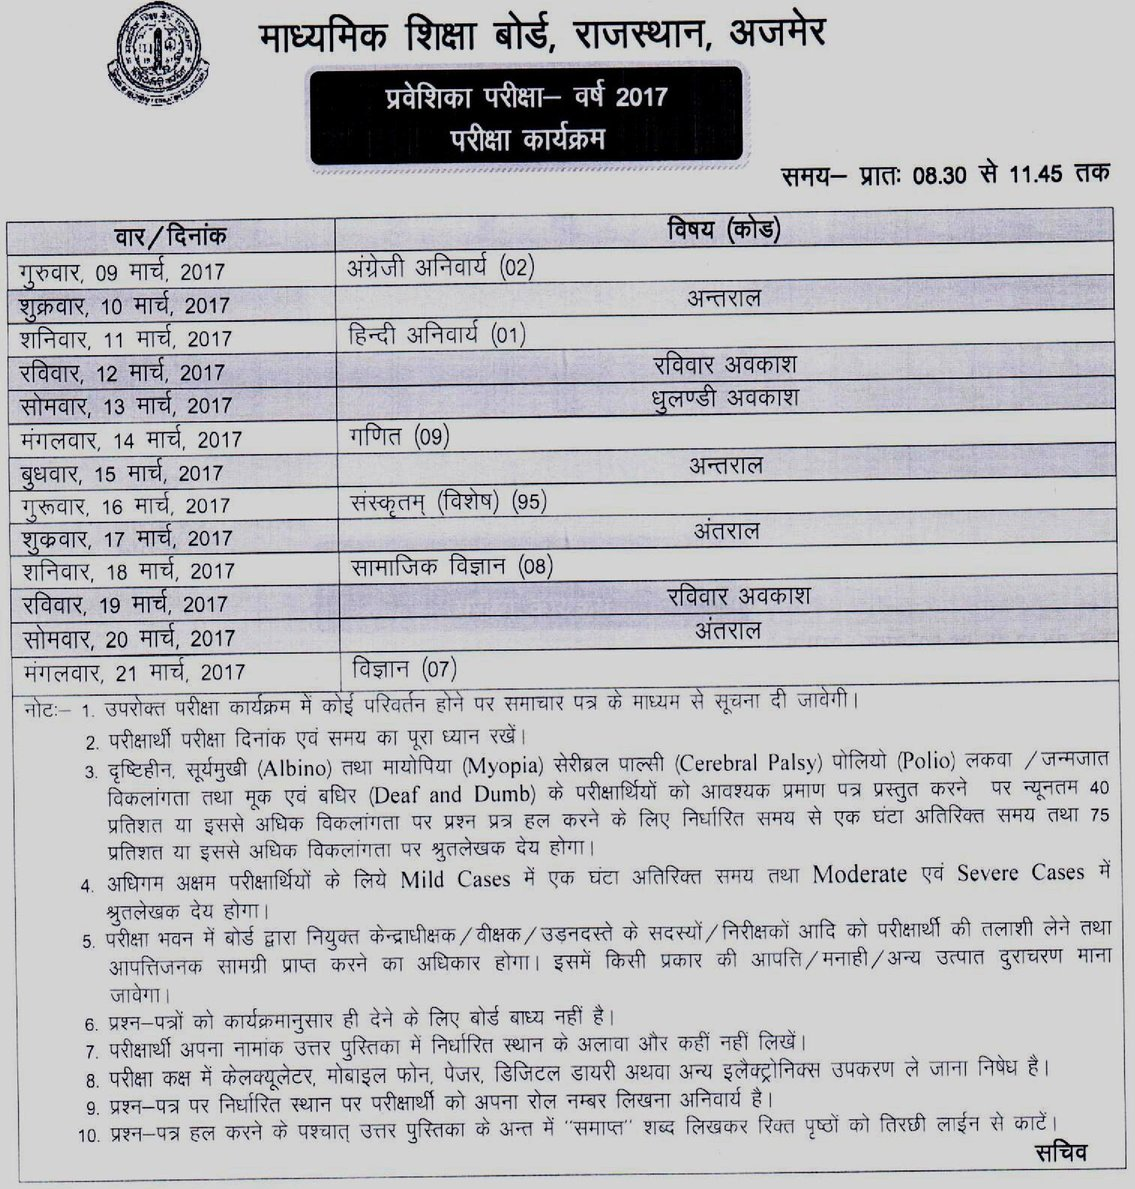 Rajasthan Board Time Table 2017 Class 10th and 12th